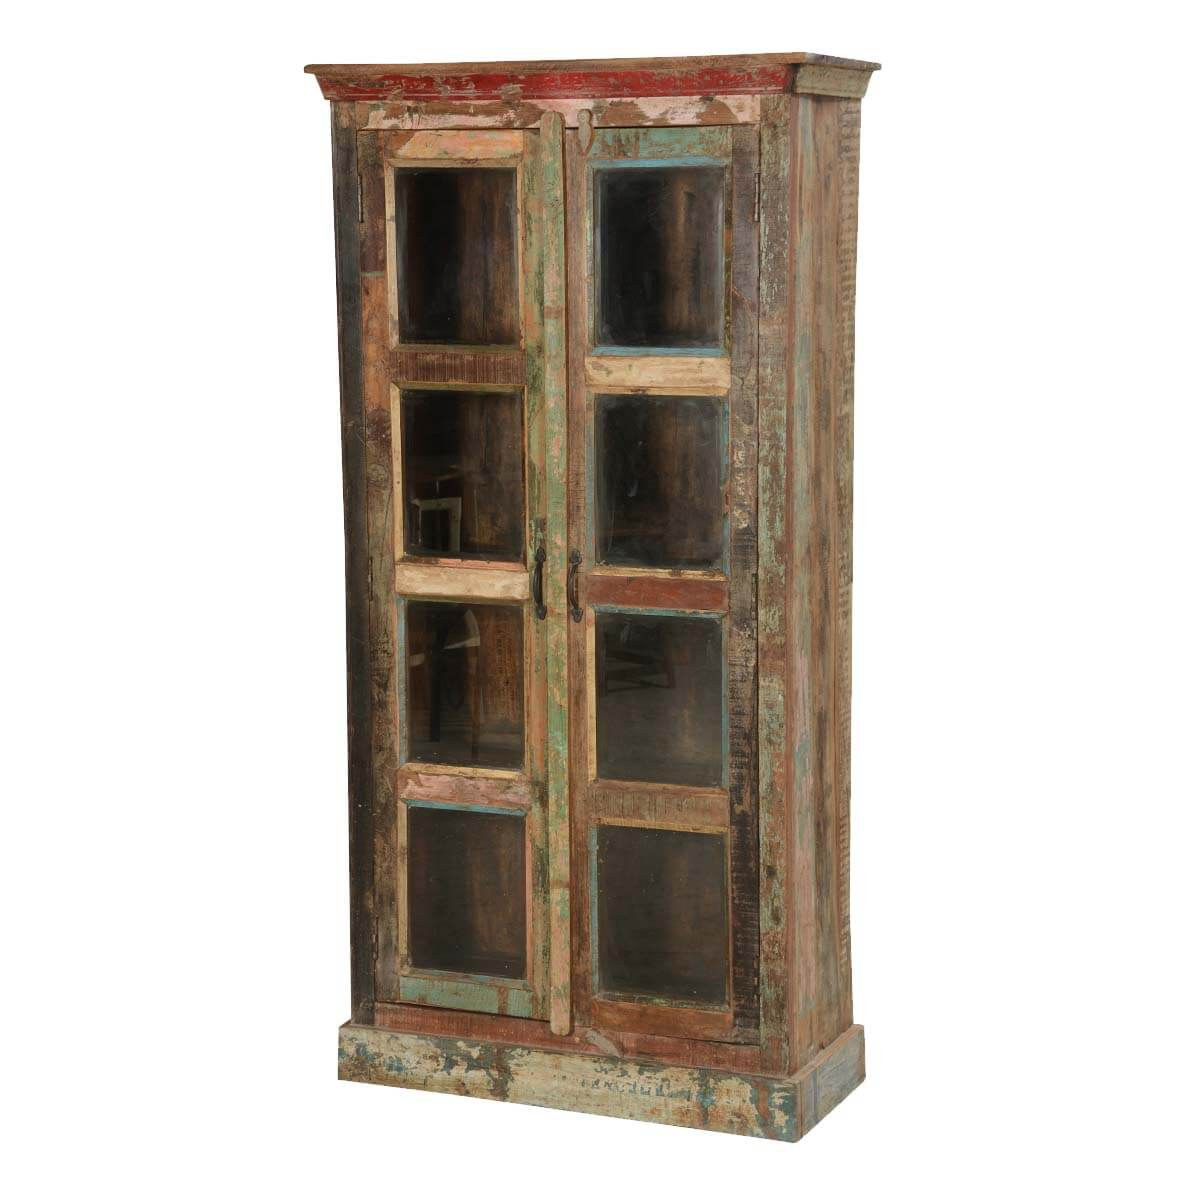 "Rustic Reclaimed Wood New Orleans 71"" High Display Cabinet Armoire - Reclaimed Wood New Orleans 71"" High Display Cabinet Armoire"